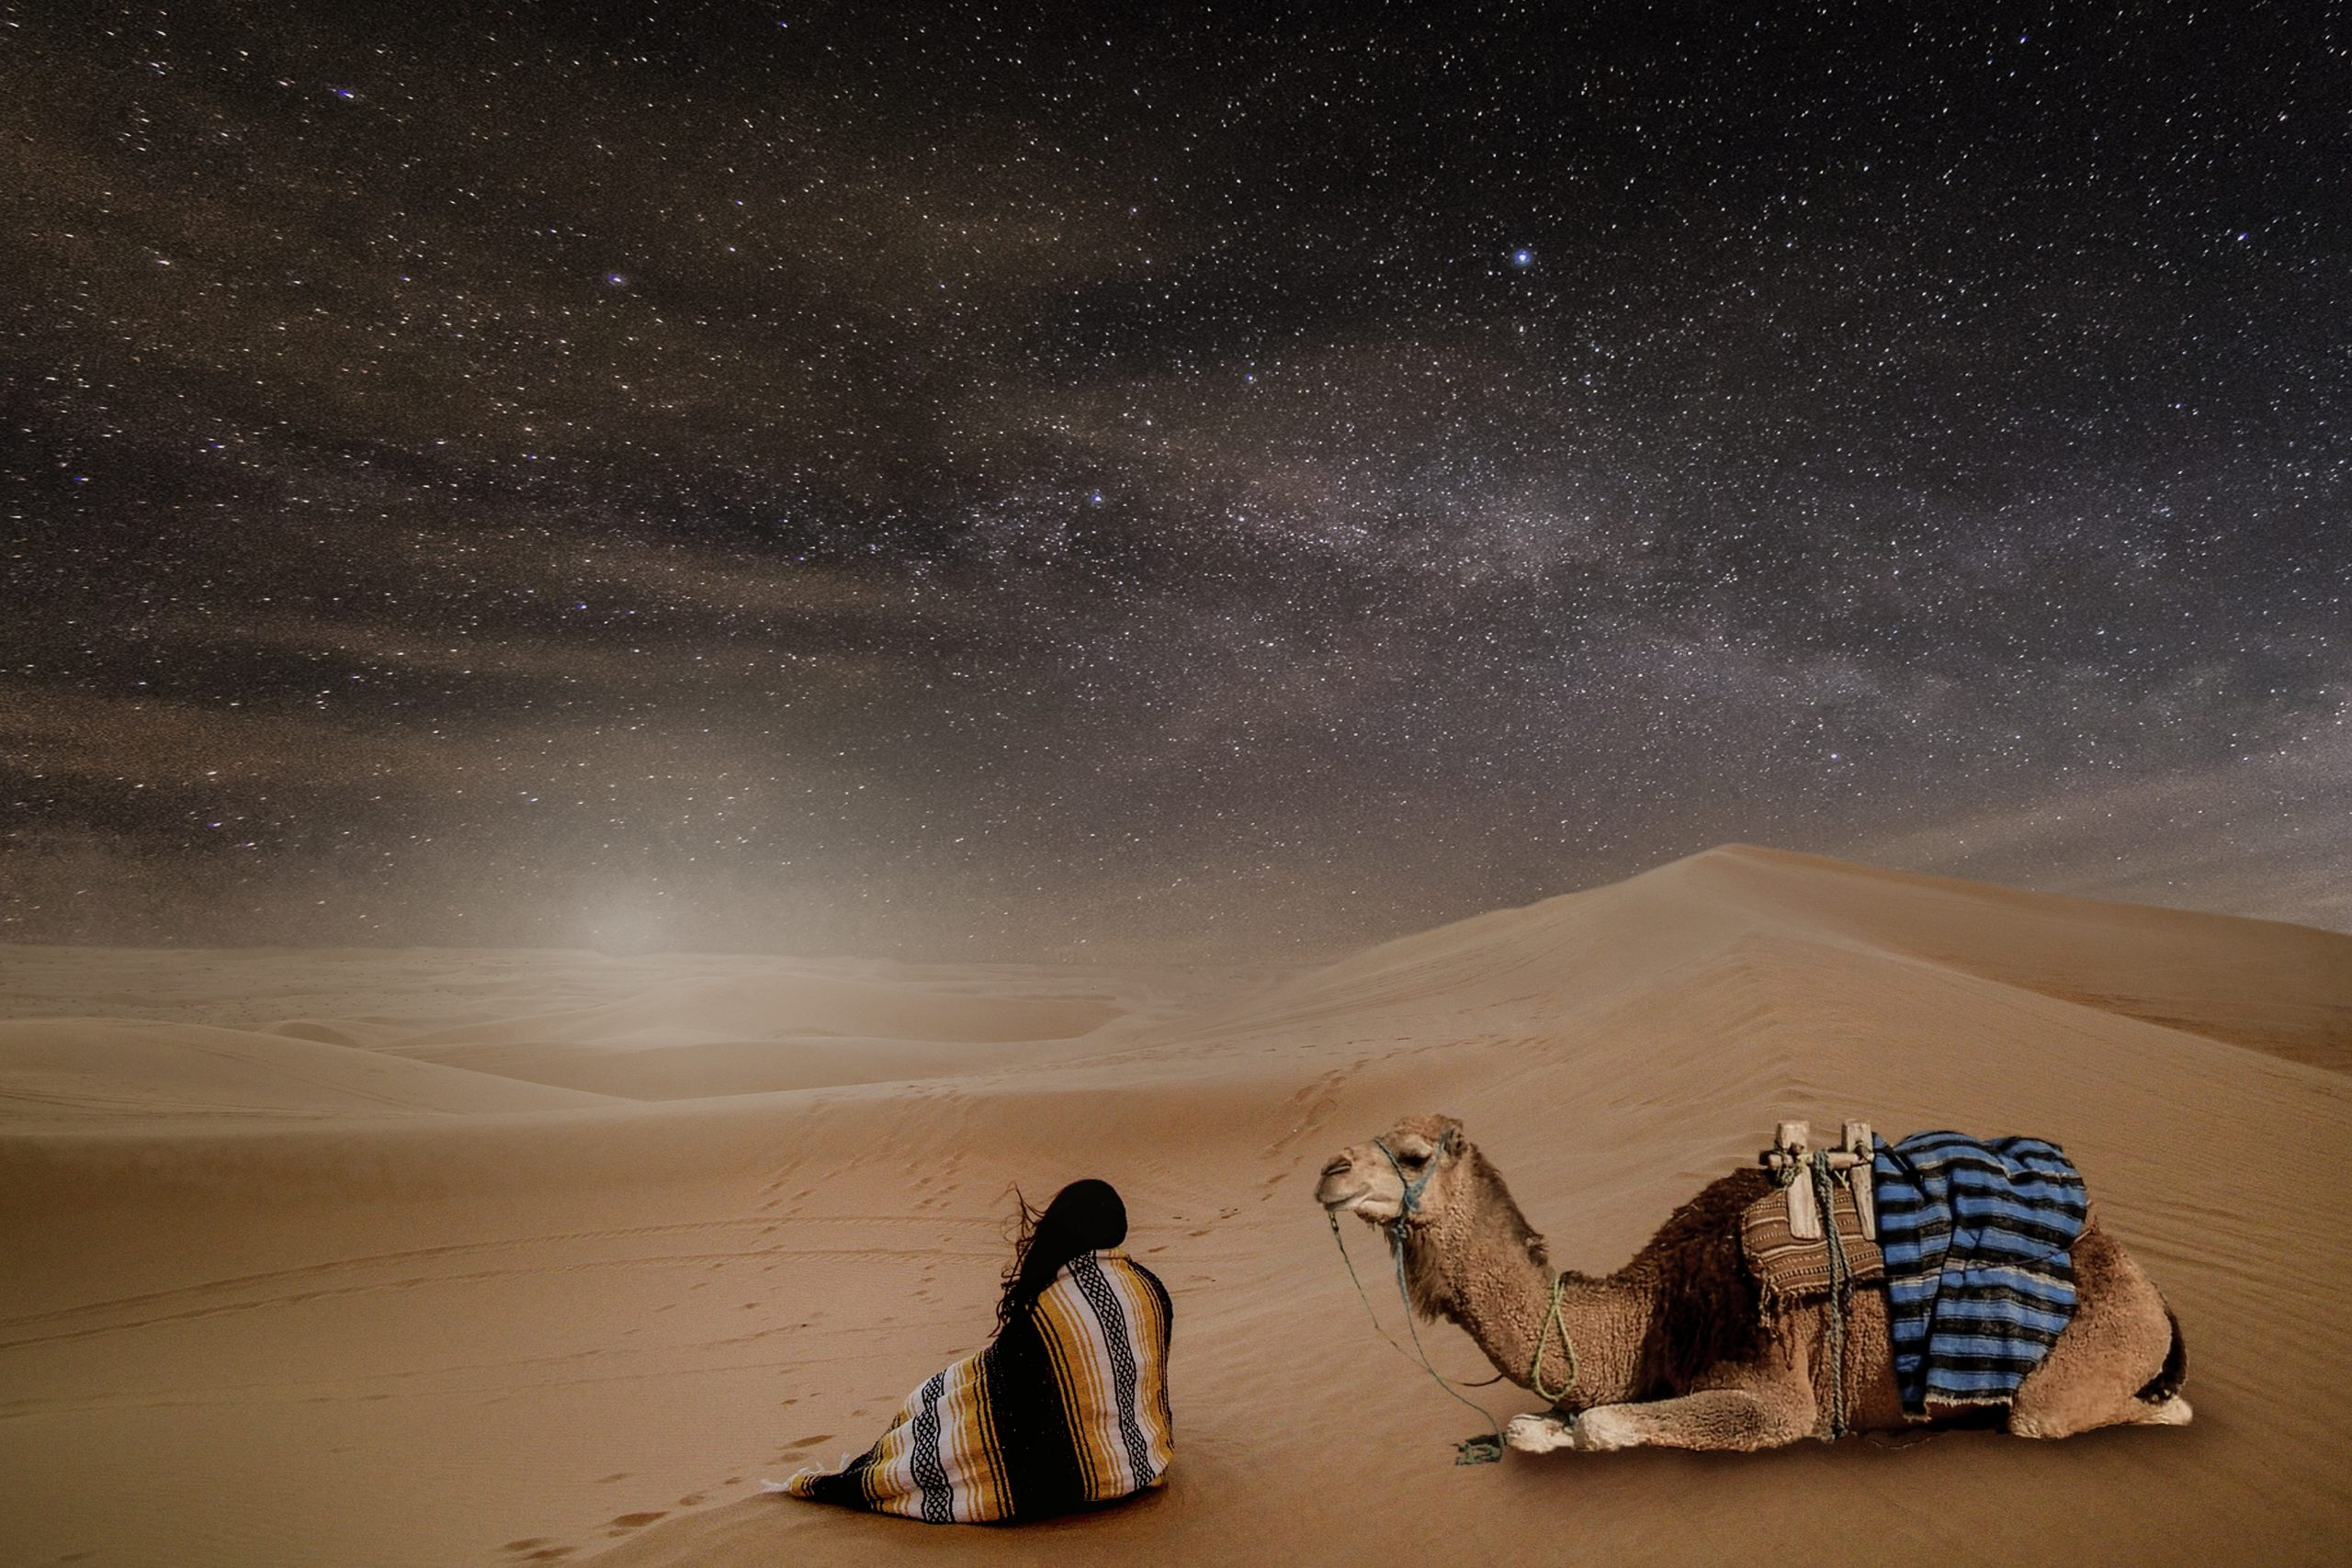 star in the desert, camel, chameau